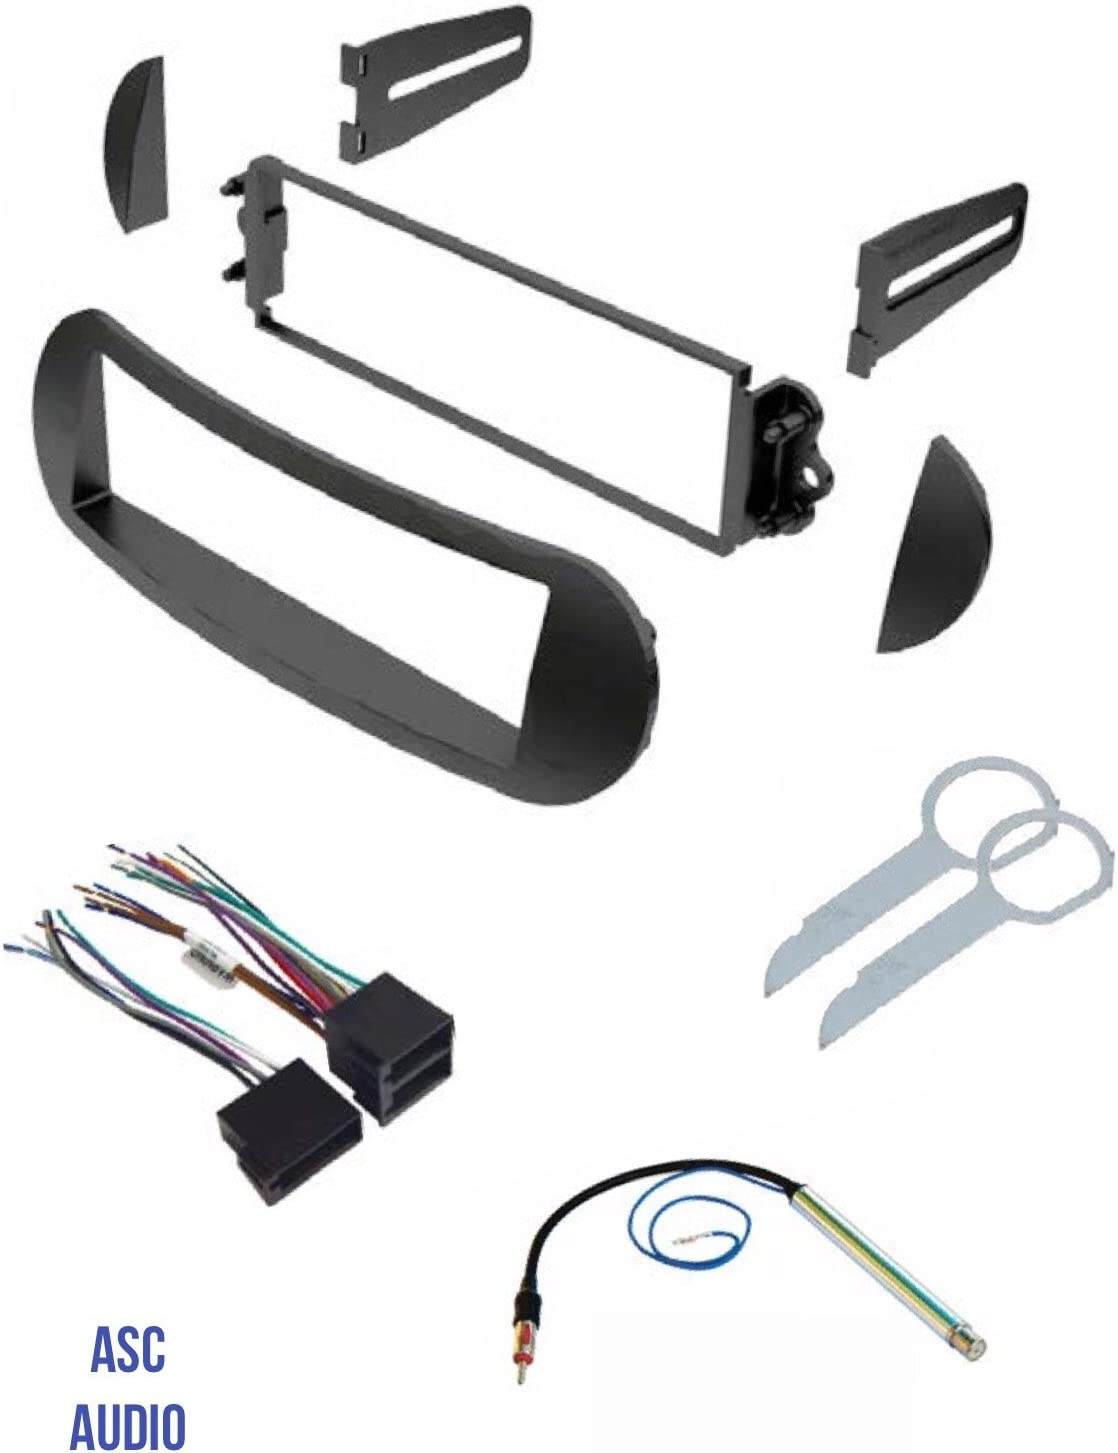 Amazon.com: ASC Car Stereo Dash Kit, Wire Harness, Antenna Adapter, and  Radio Tool for Installing a Single Din Radio for select VW Volkswagen Beetle  Vehicles - Compatible Vehicles Listed Below: Car ElectronicsAmazon.com